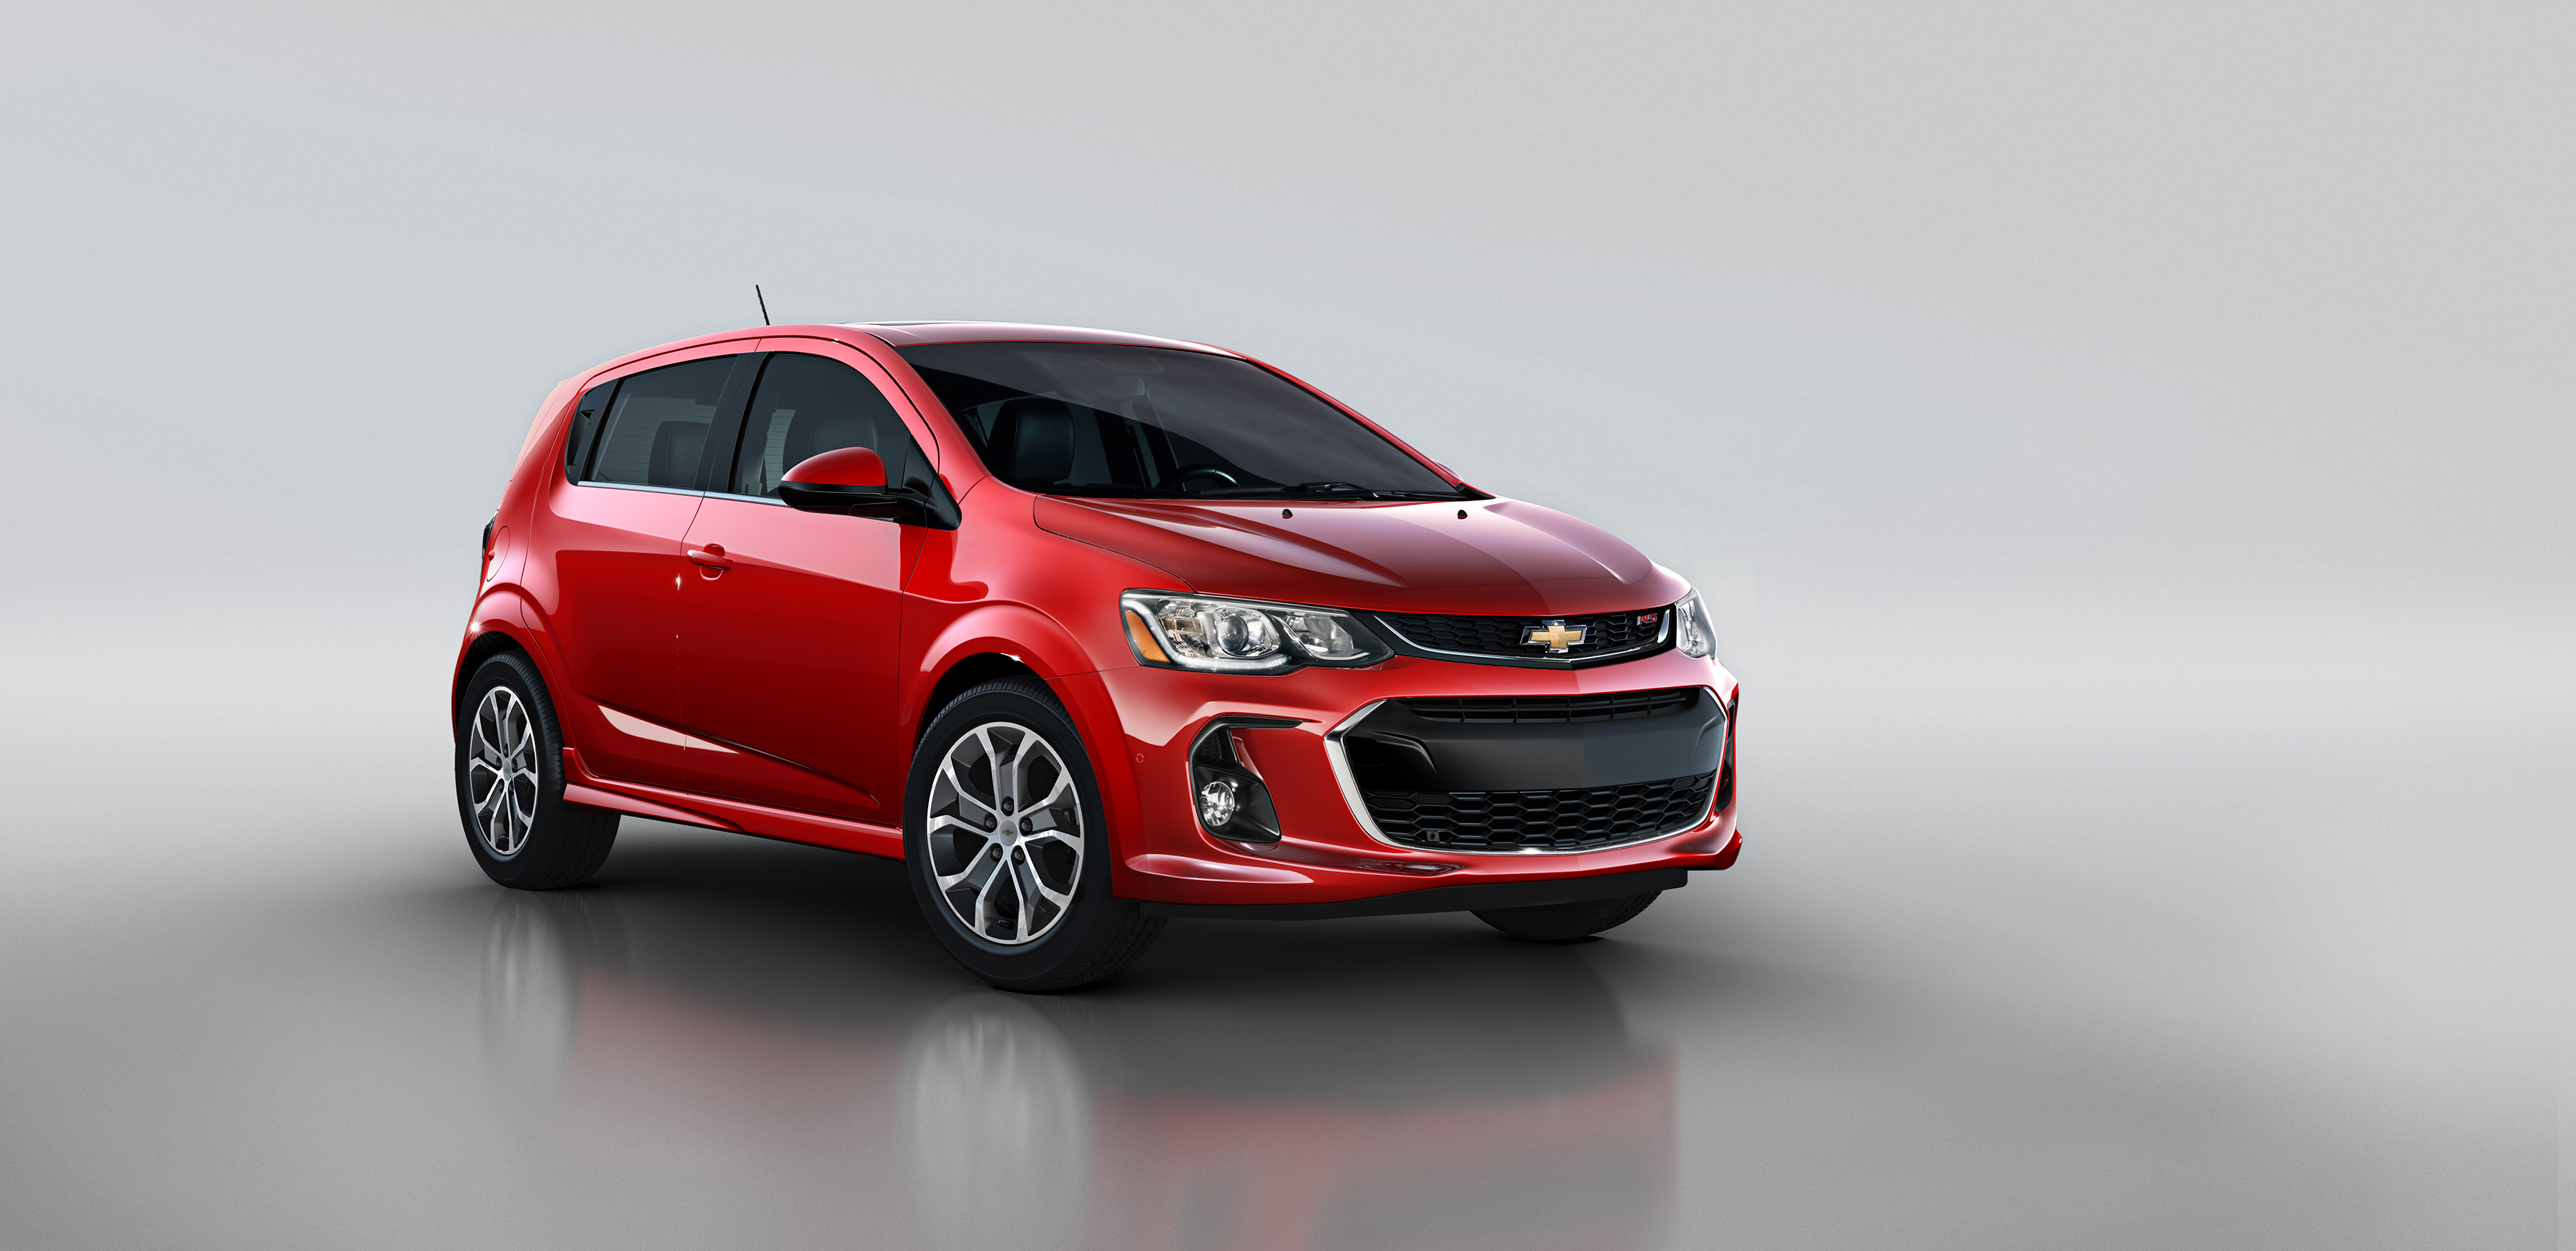 Chevrolet Sonic Repair Manual: All Seasons Tires Description